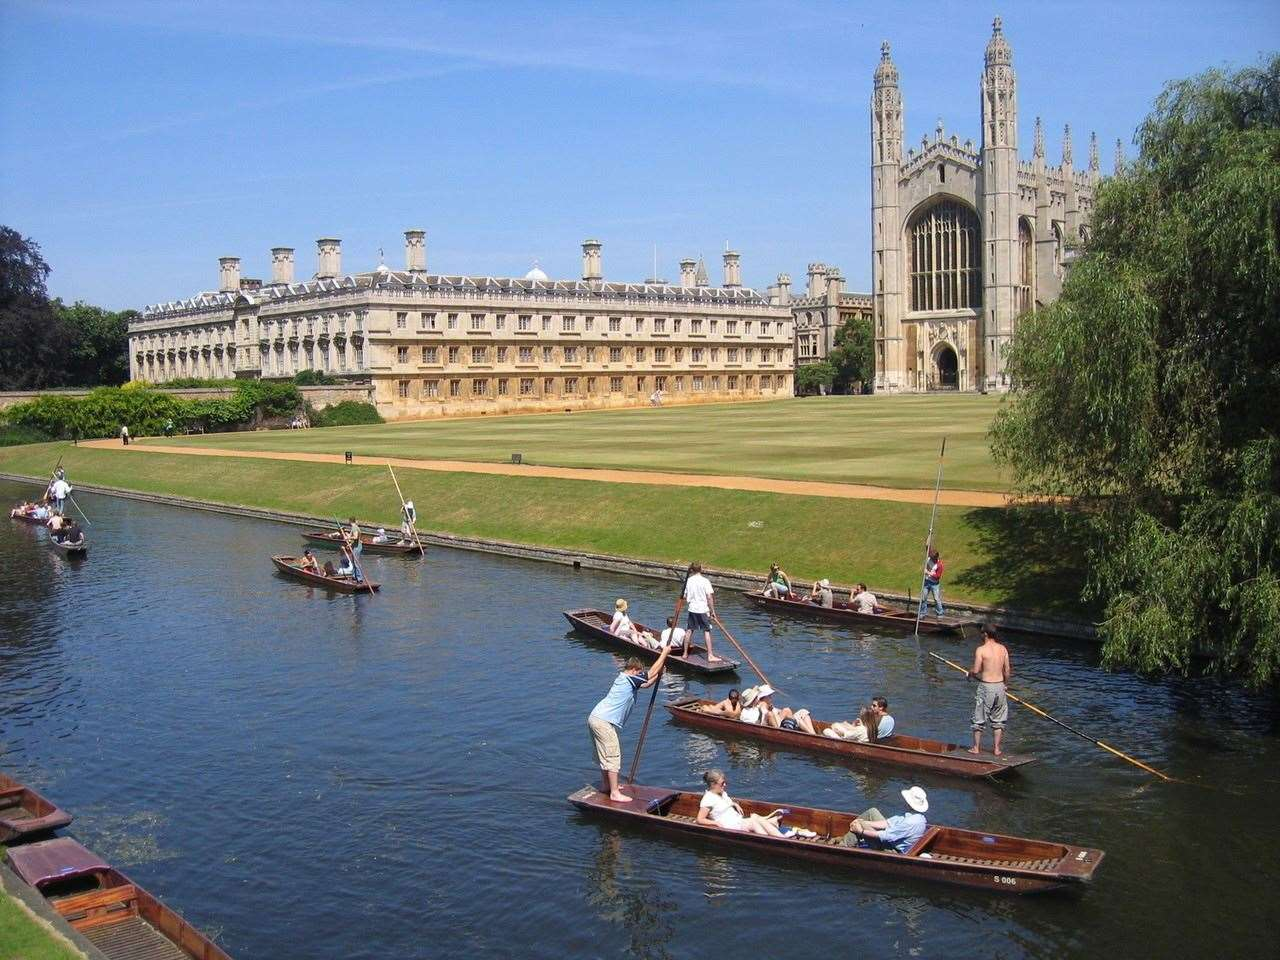 The University of Cambridge has an enduring position at the heart of the global education system